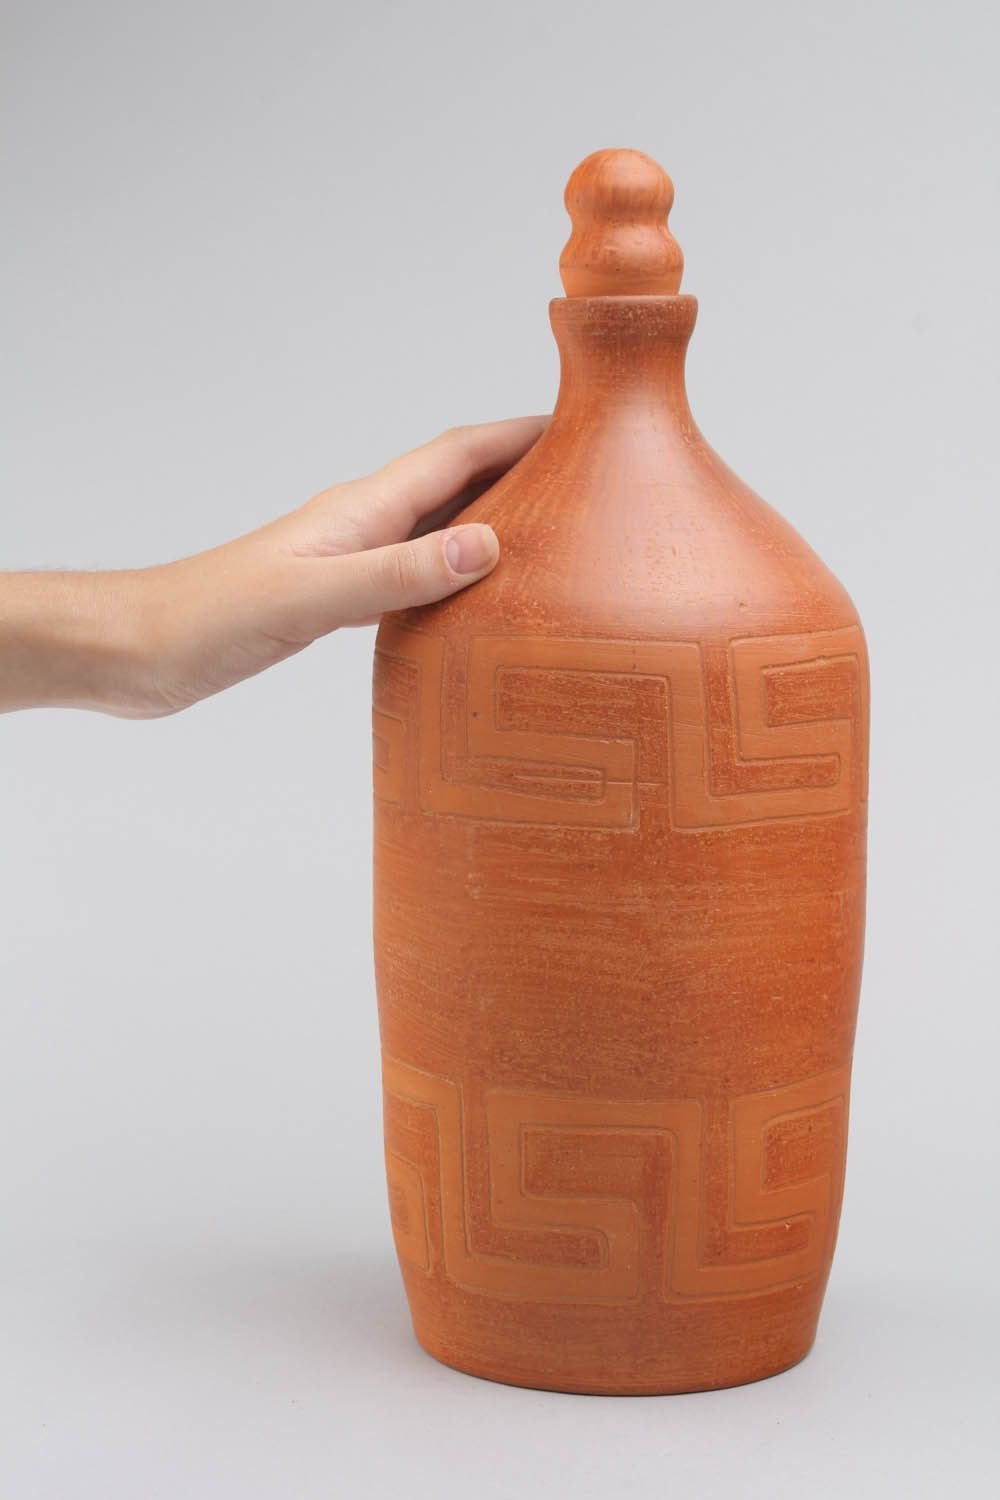 Compra Botella ceramica en Amazon.es